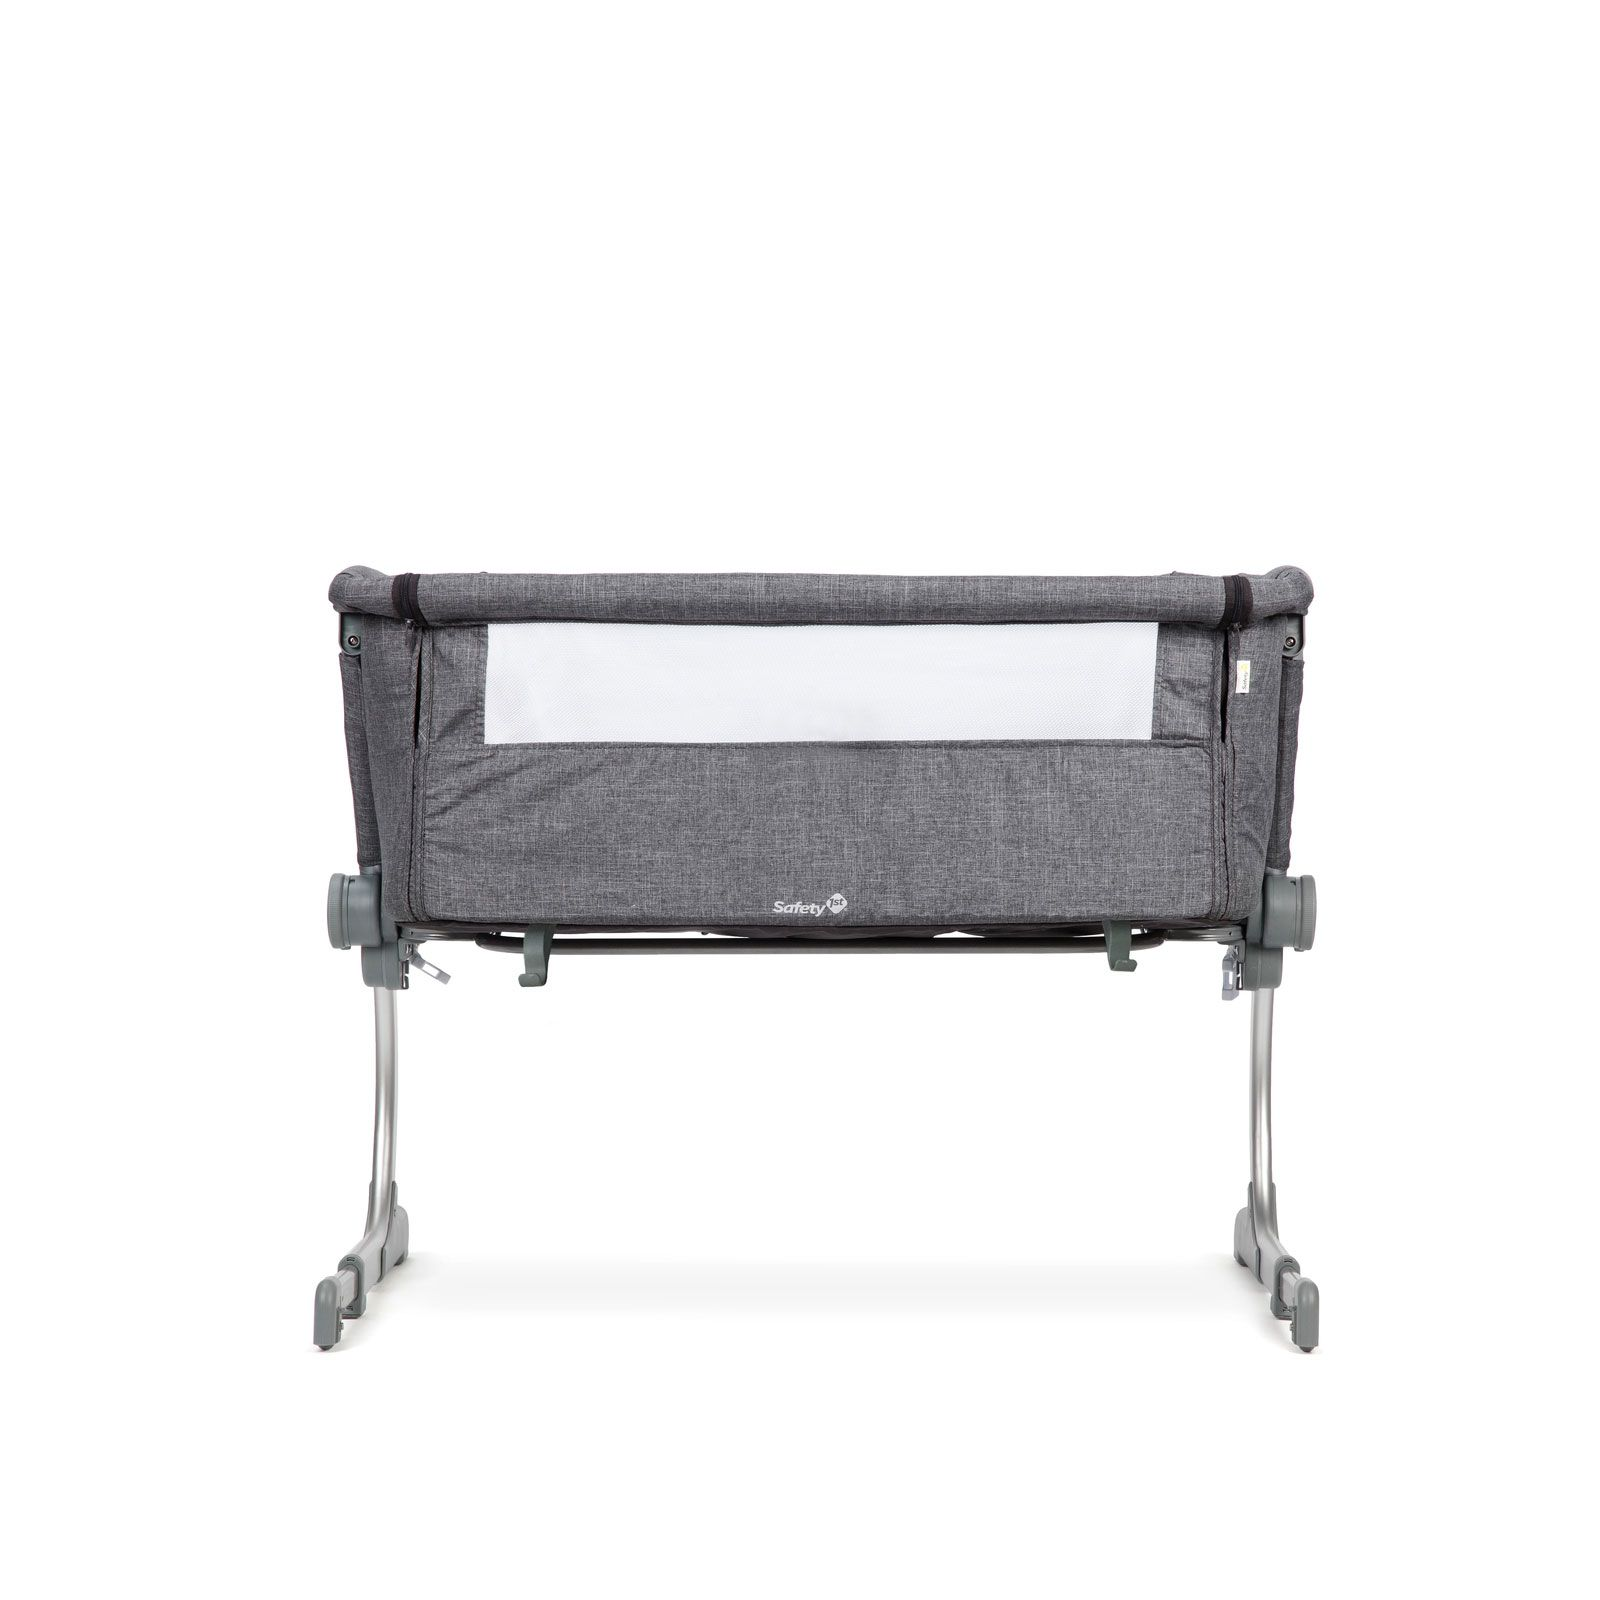 Berço Portátil Side by Side Gray - Safety 1st Mc109